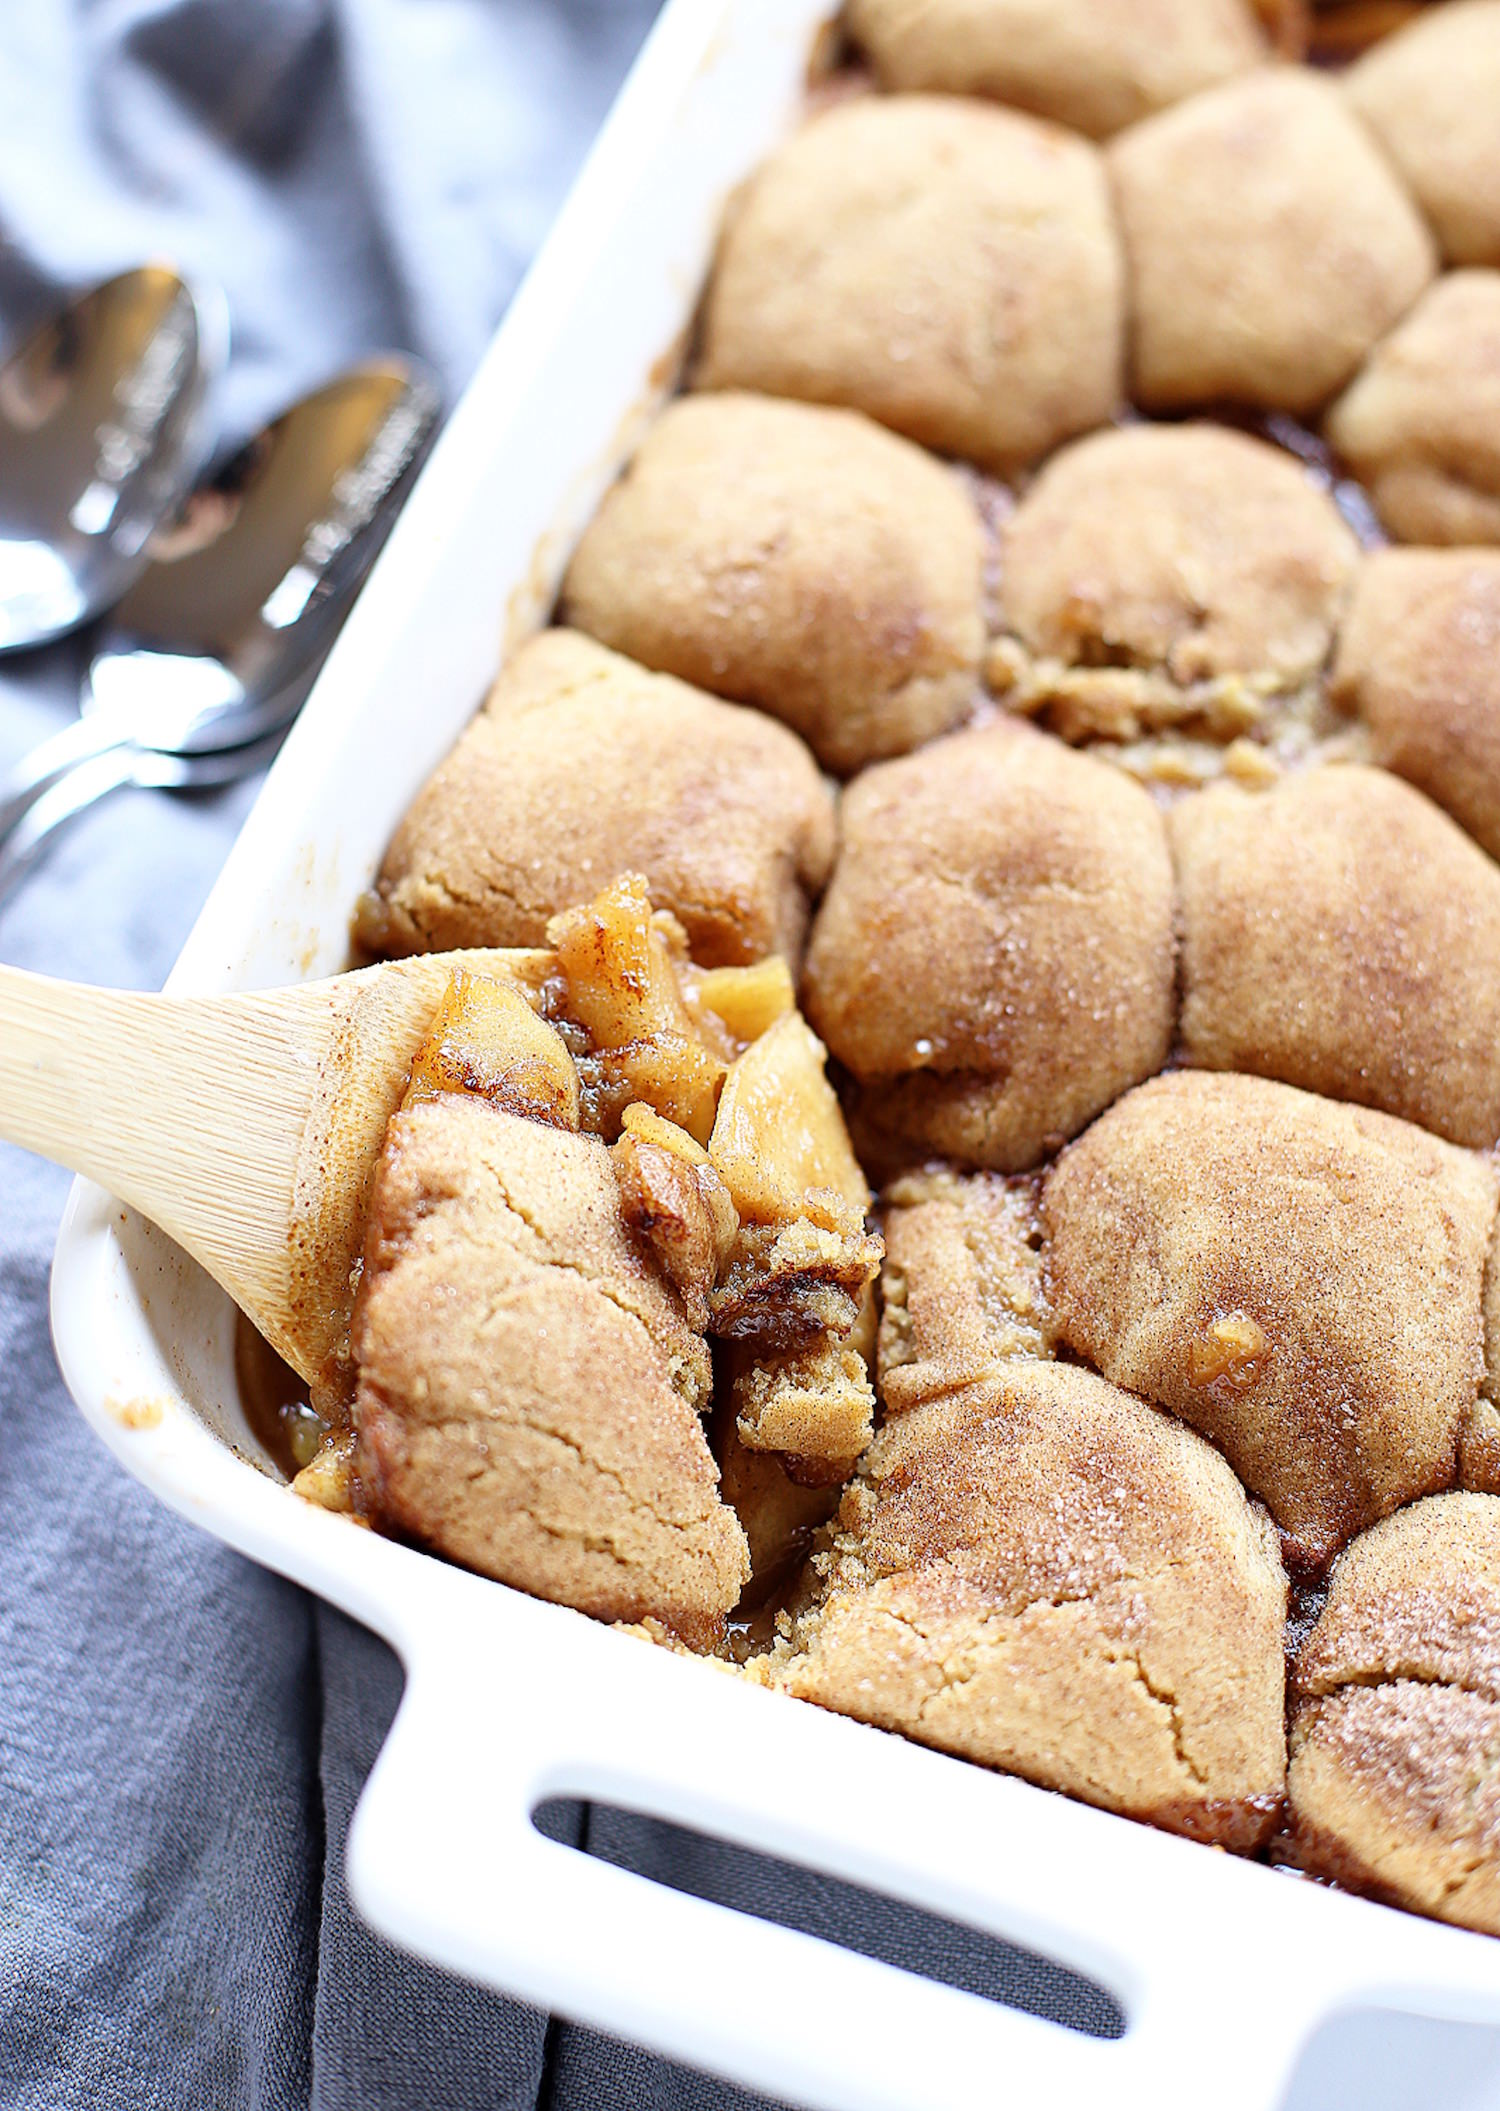 Caramel Apple Snickerdoodle Cobbler: brown butter, caramelized apple mixture topped with the best snickerdoodle cookies. One epic cobbler! | TrufflesandTrends.com